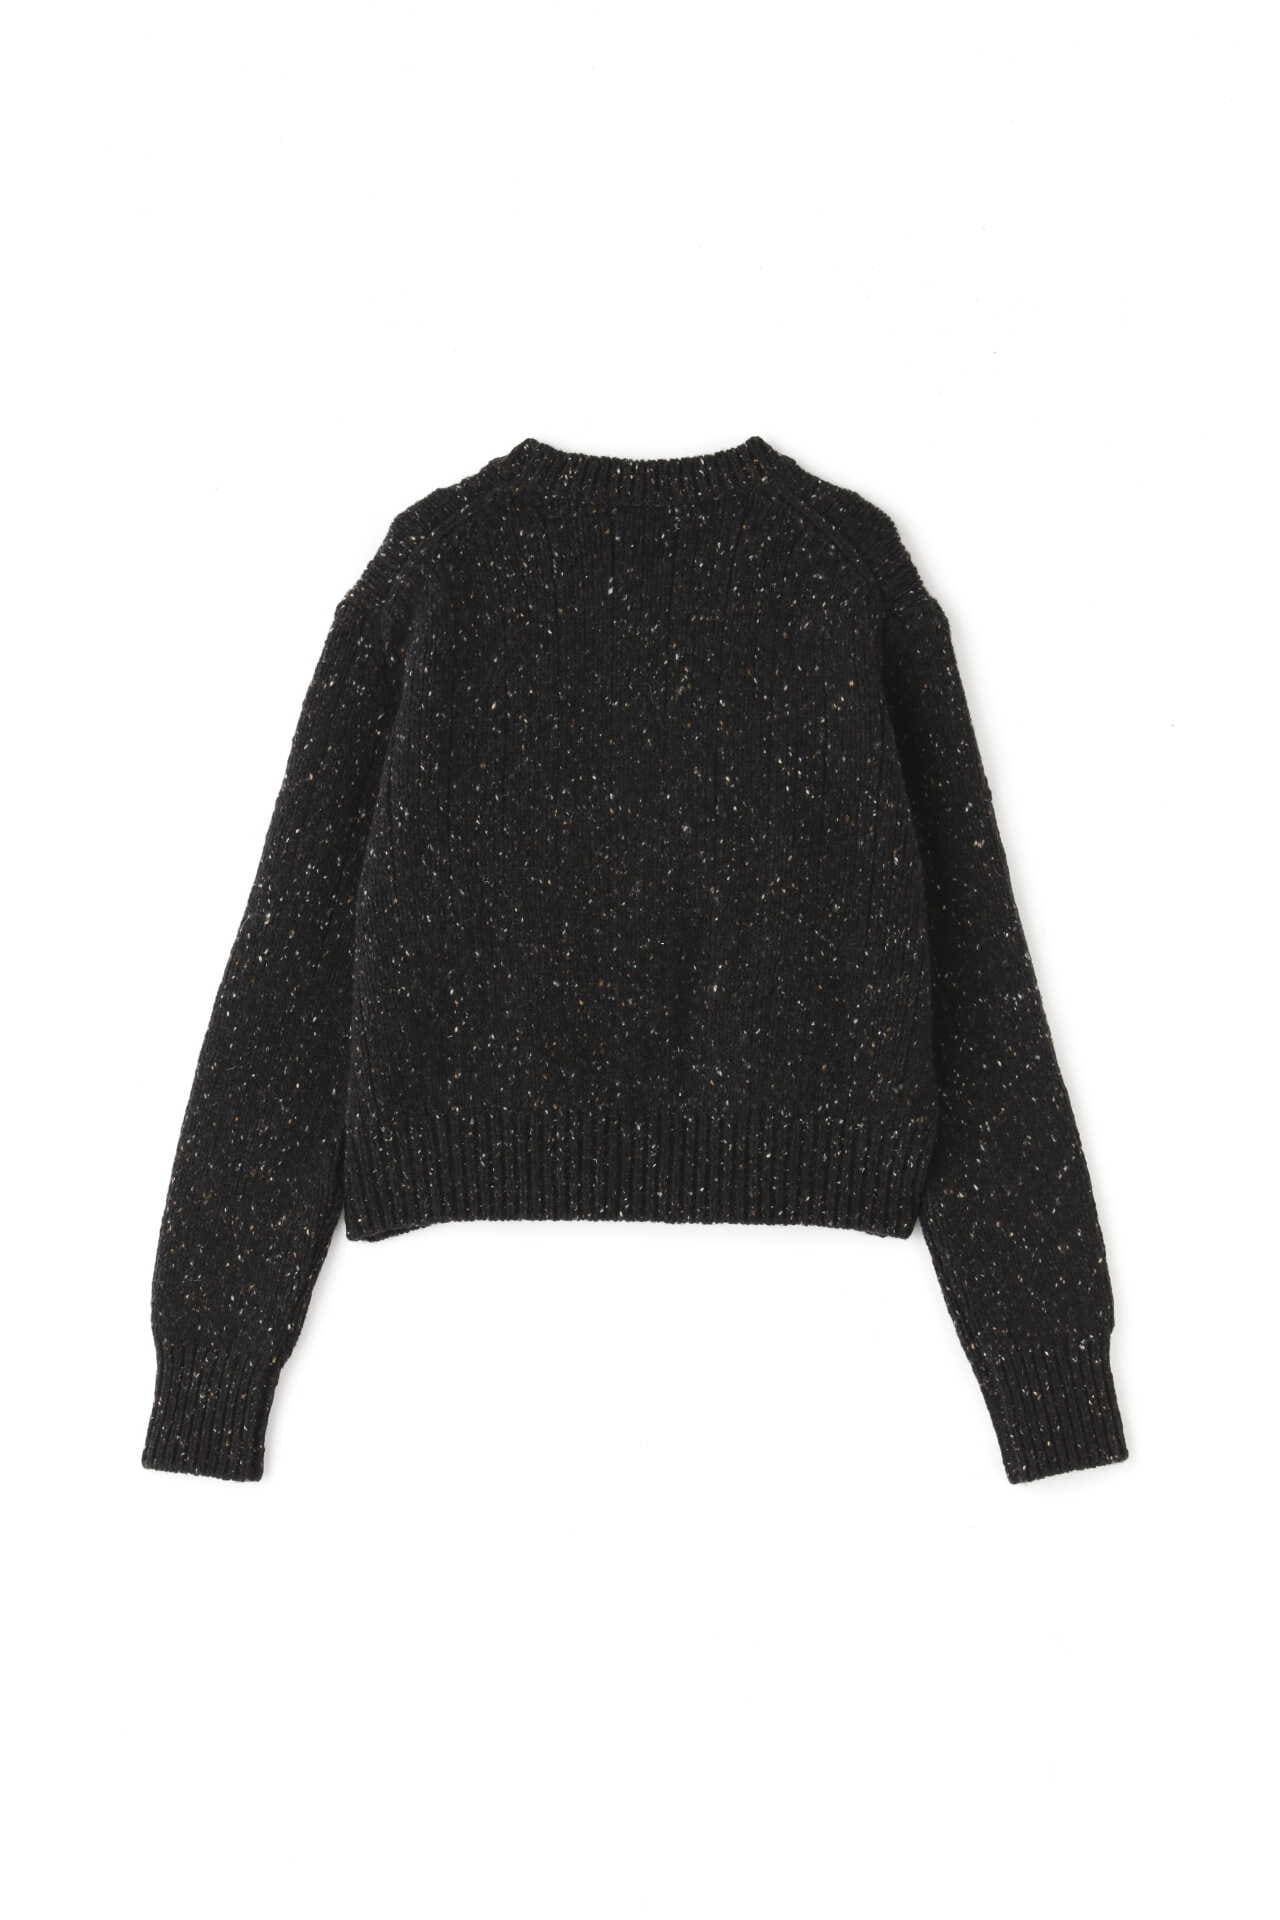 CABLE SWEAT SHIRT7